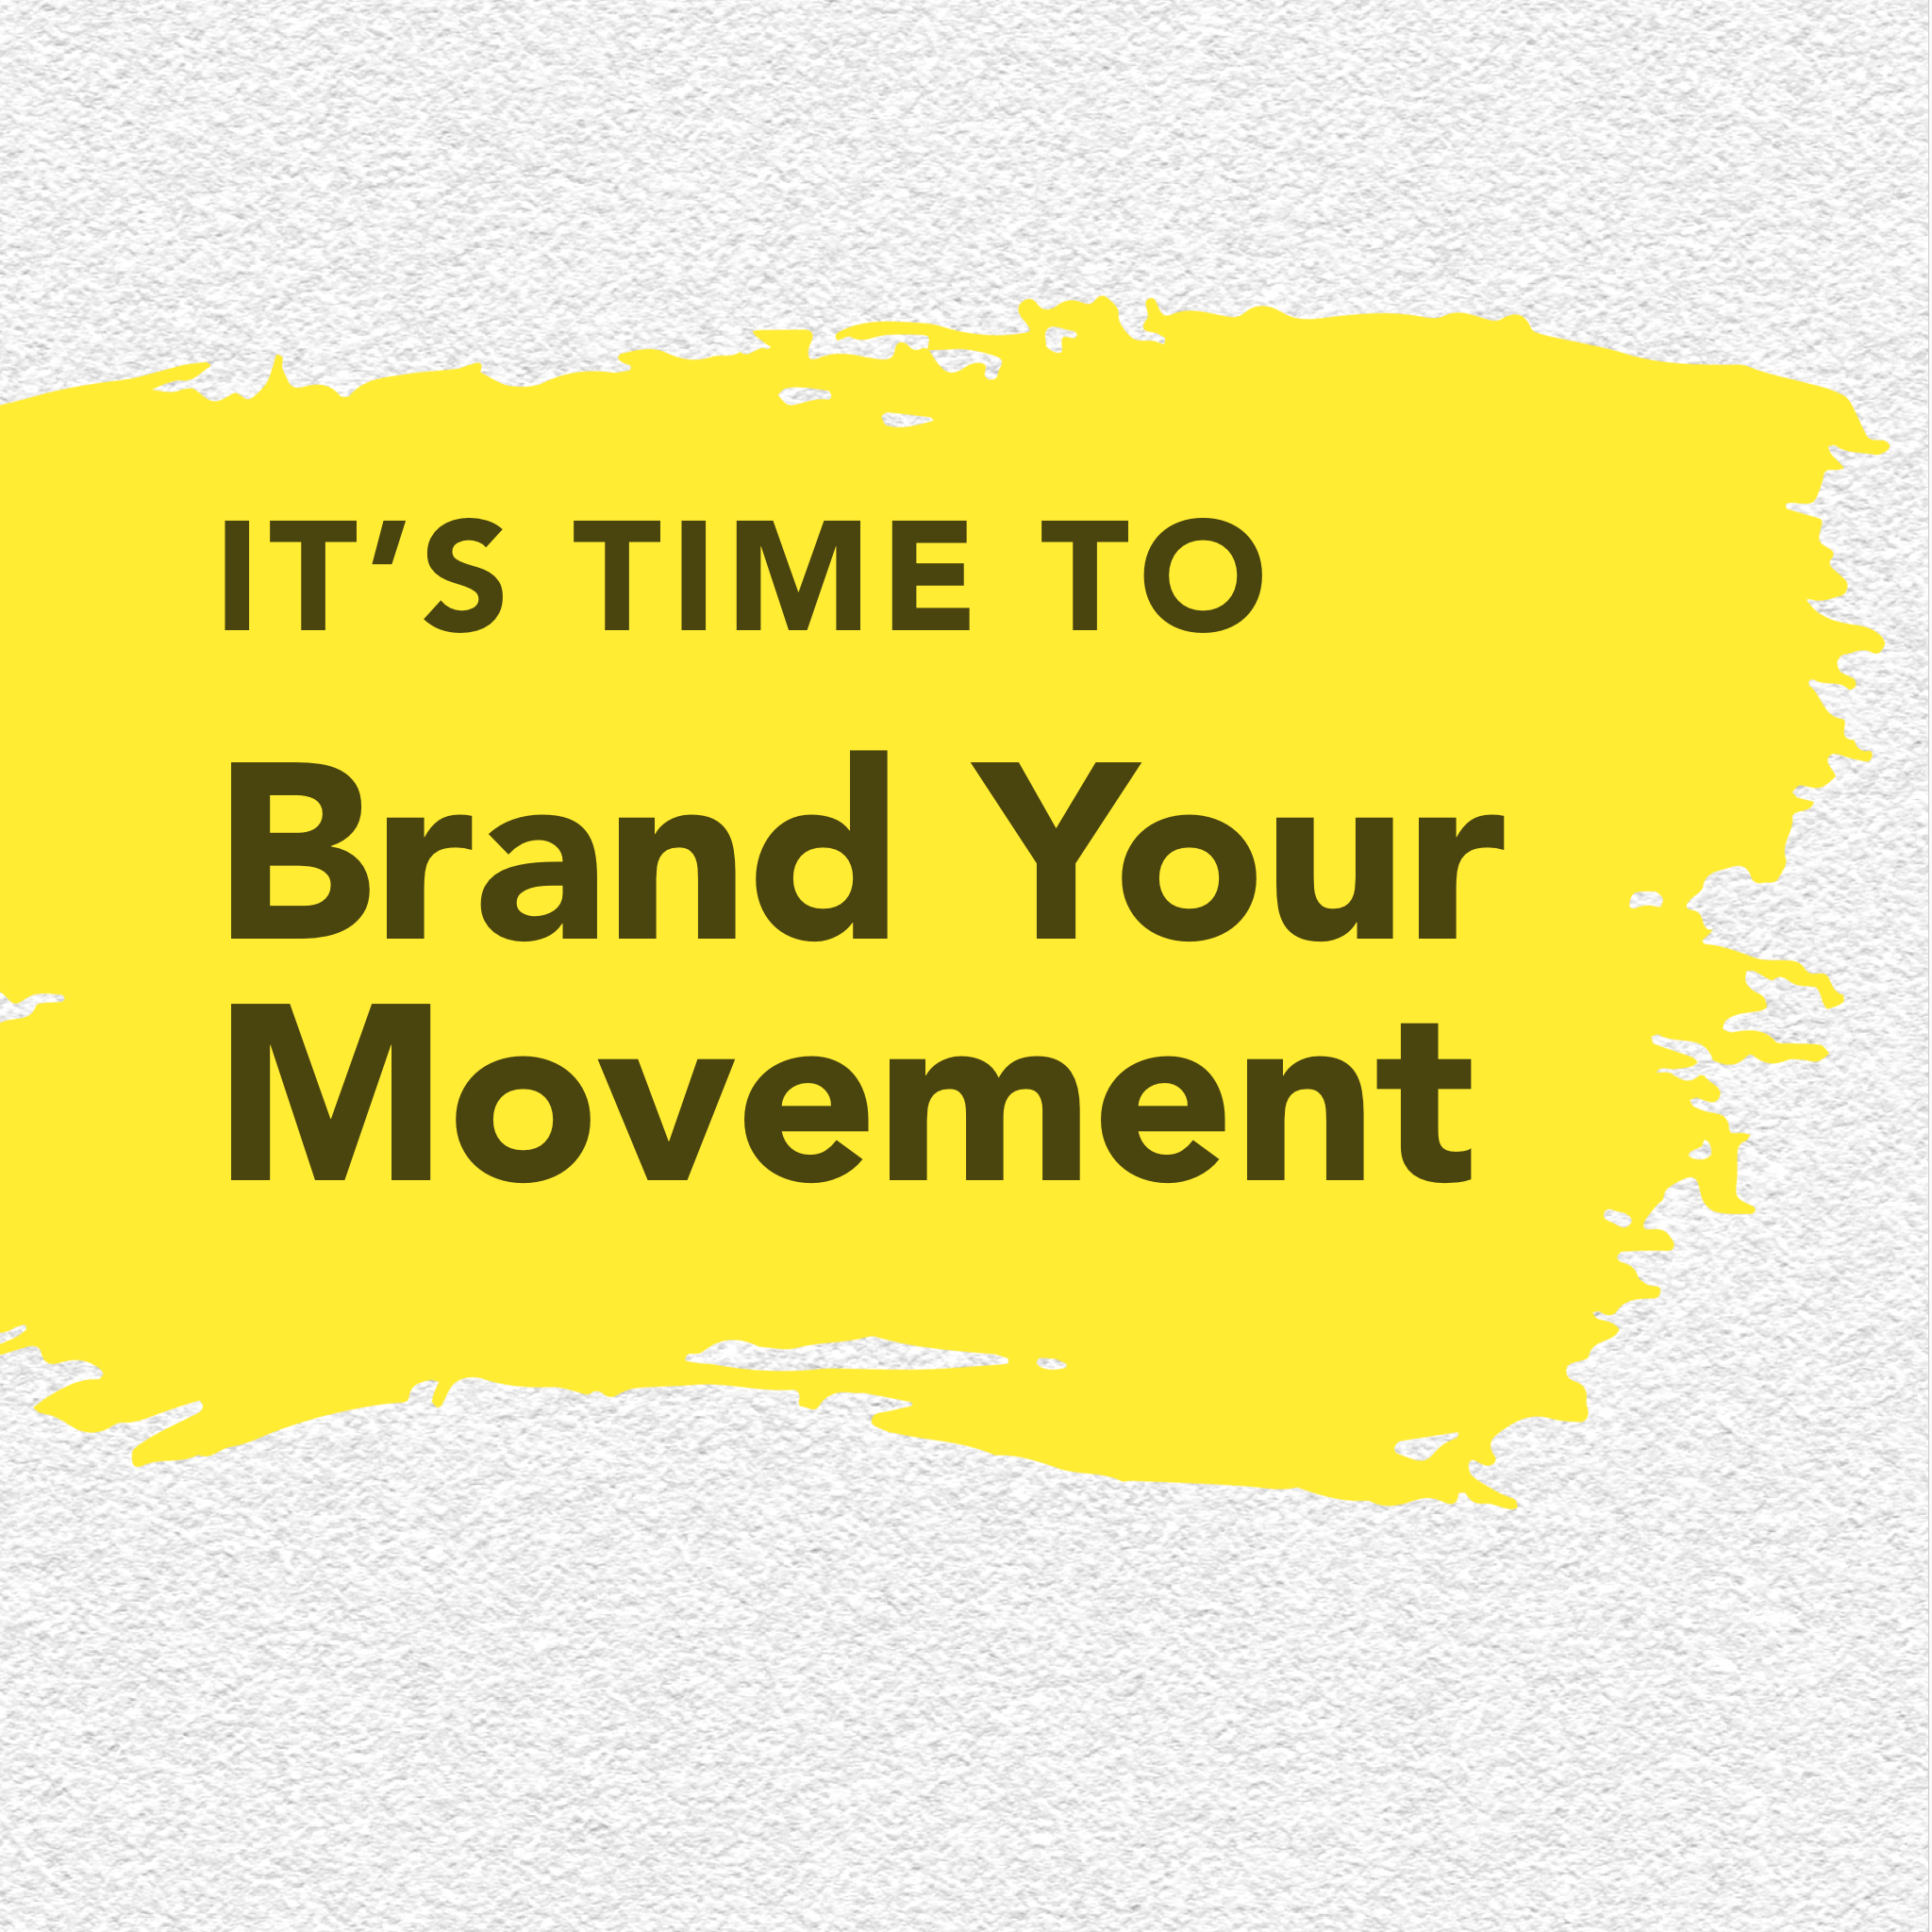 Brand your movement